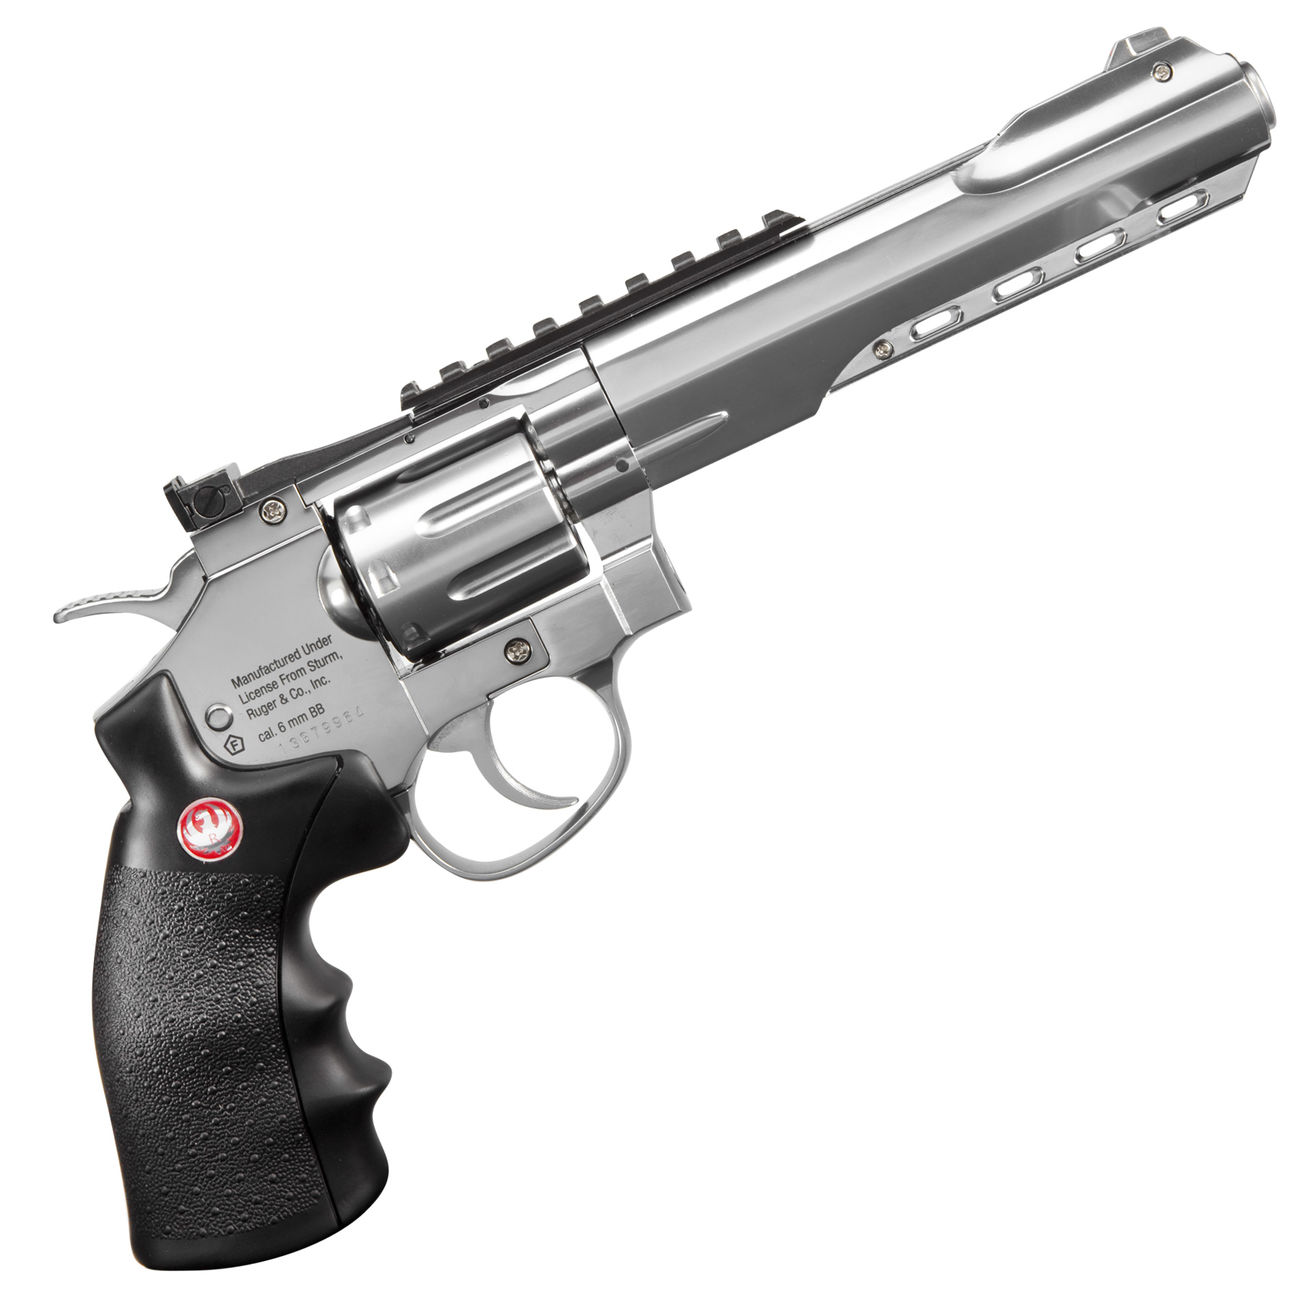 Ruger Super Hawk 6 Zoll 6mm BB CO2 Revolver chrom 2